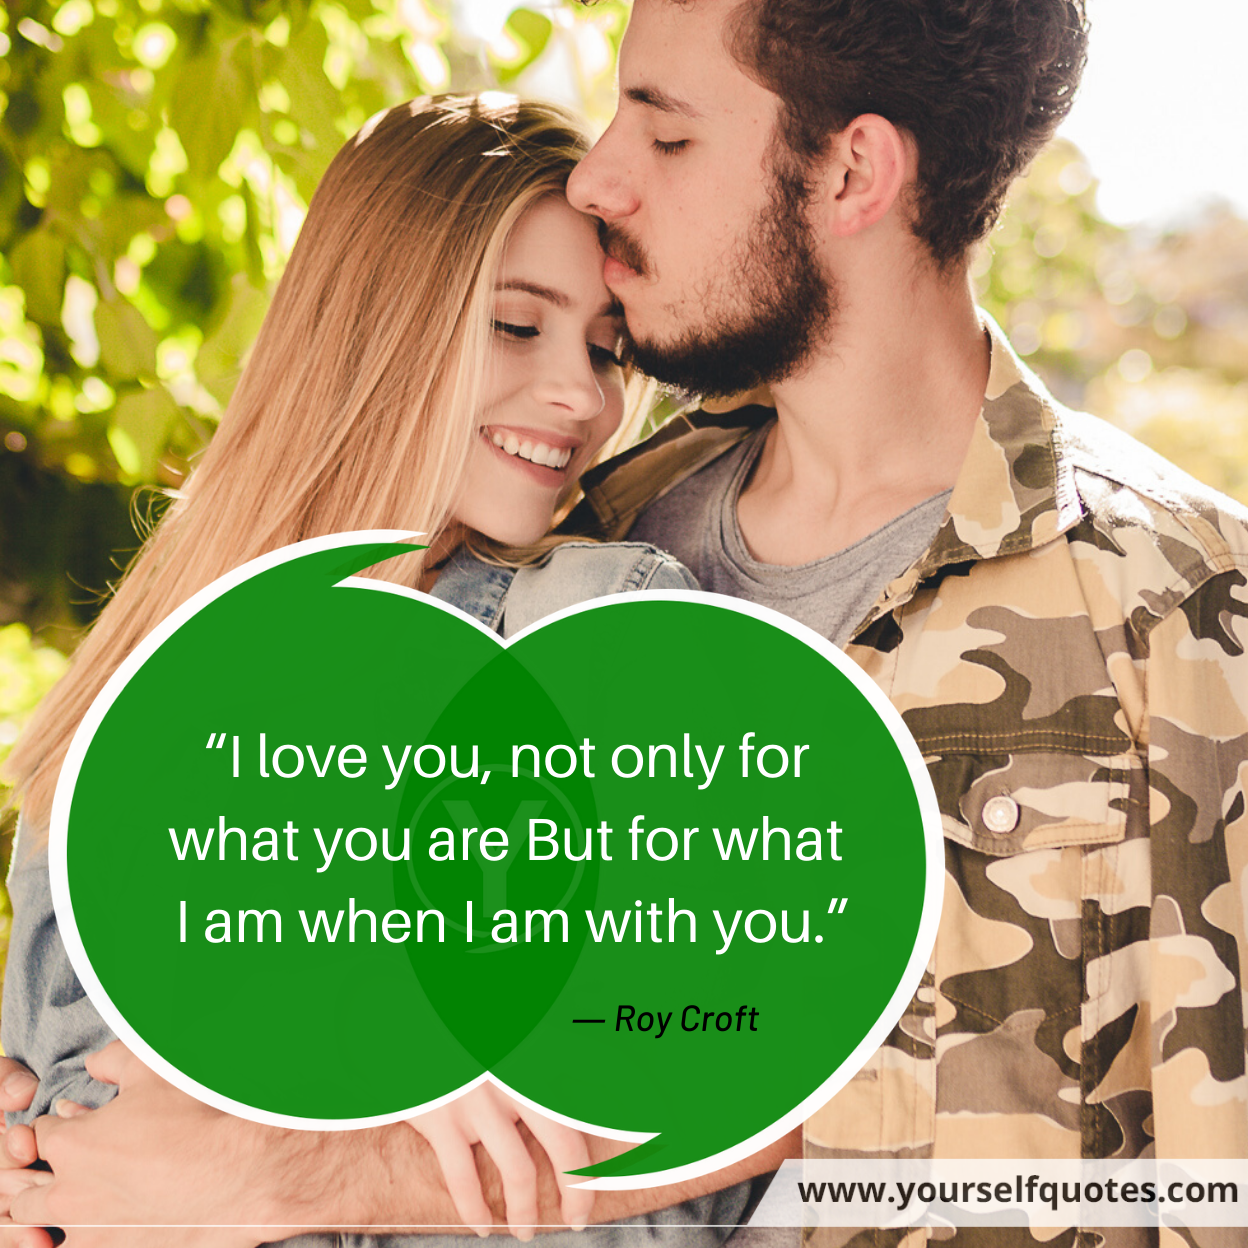 Quotes on Love by Roy Croft